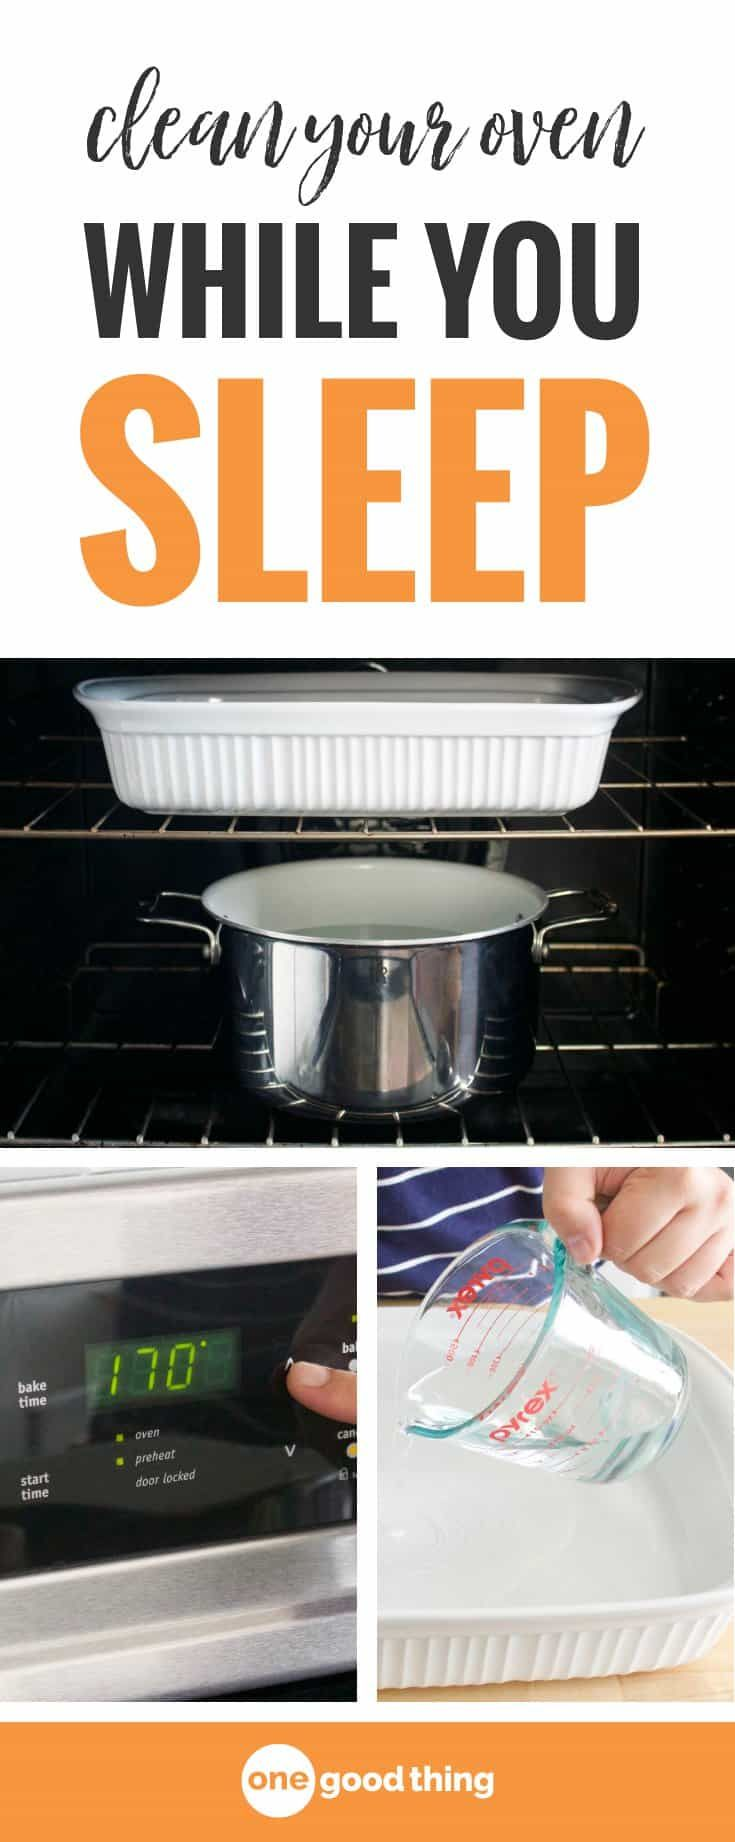 f7164b859d211912322a5e383e0ef8de Spatters and drips are an inevitable part of using your oven. Fortunately, clean...